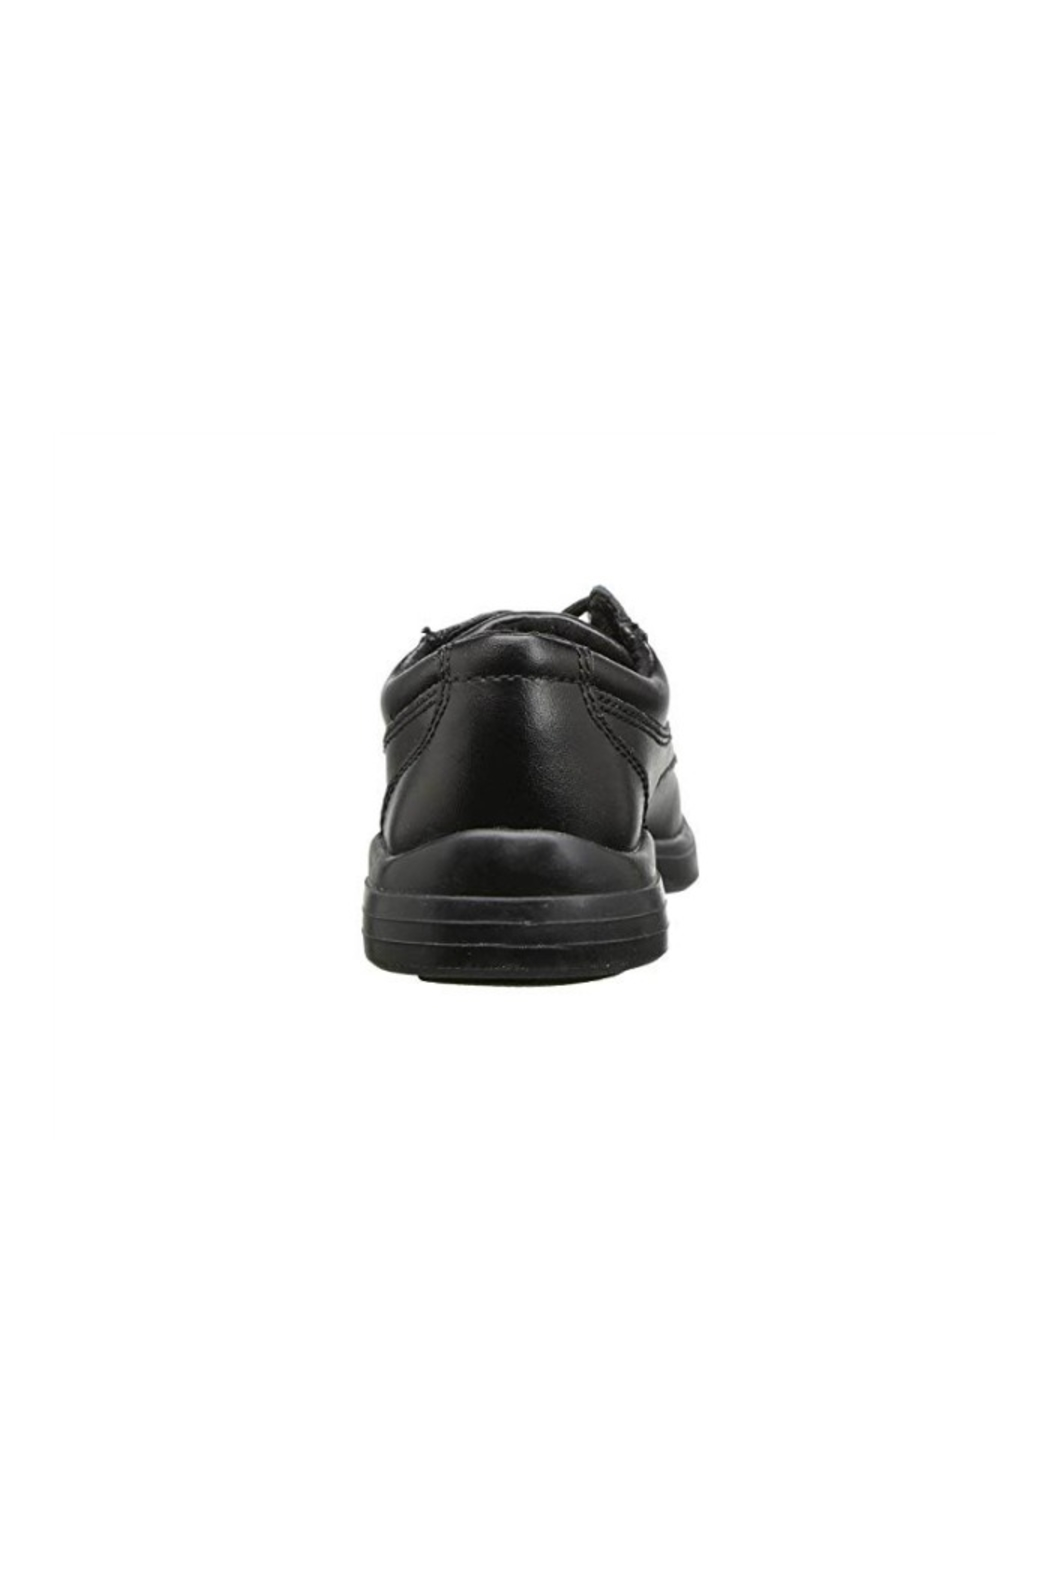 HUSH PUPPIES Hush Puppies TY - Side Cropped Image